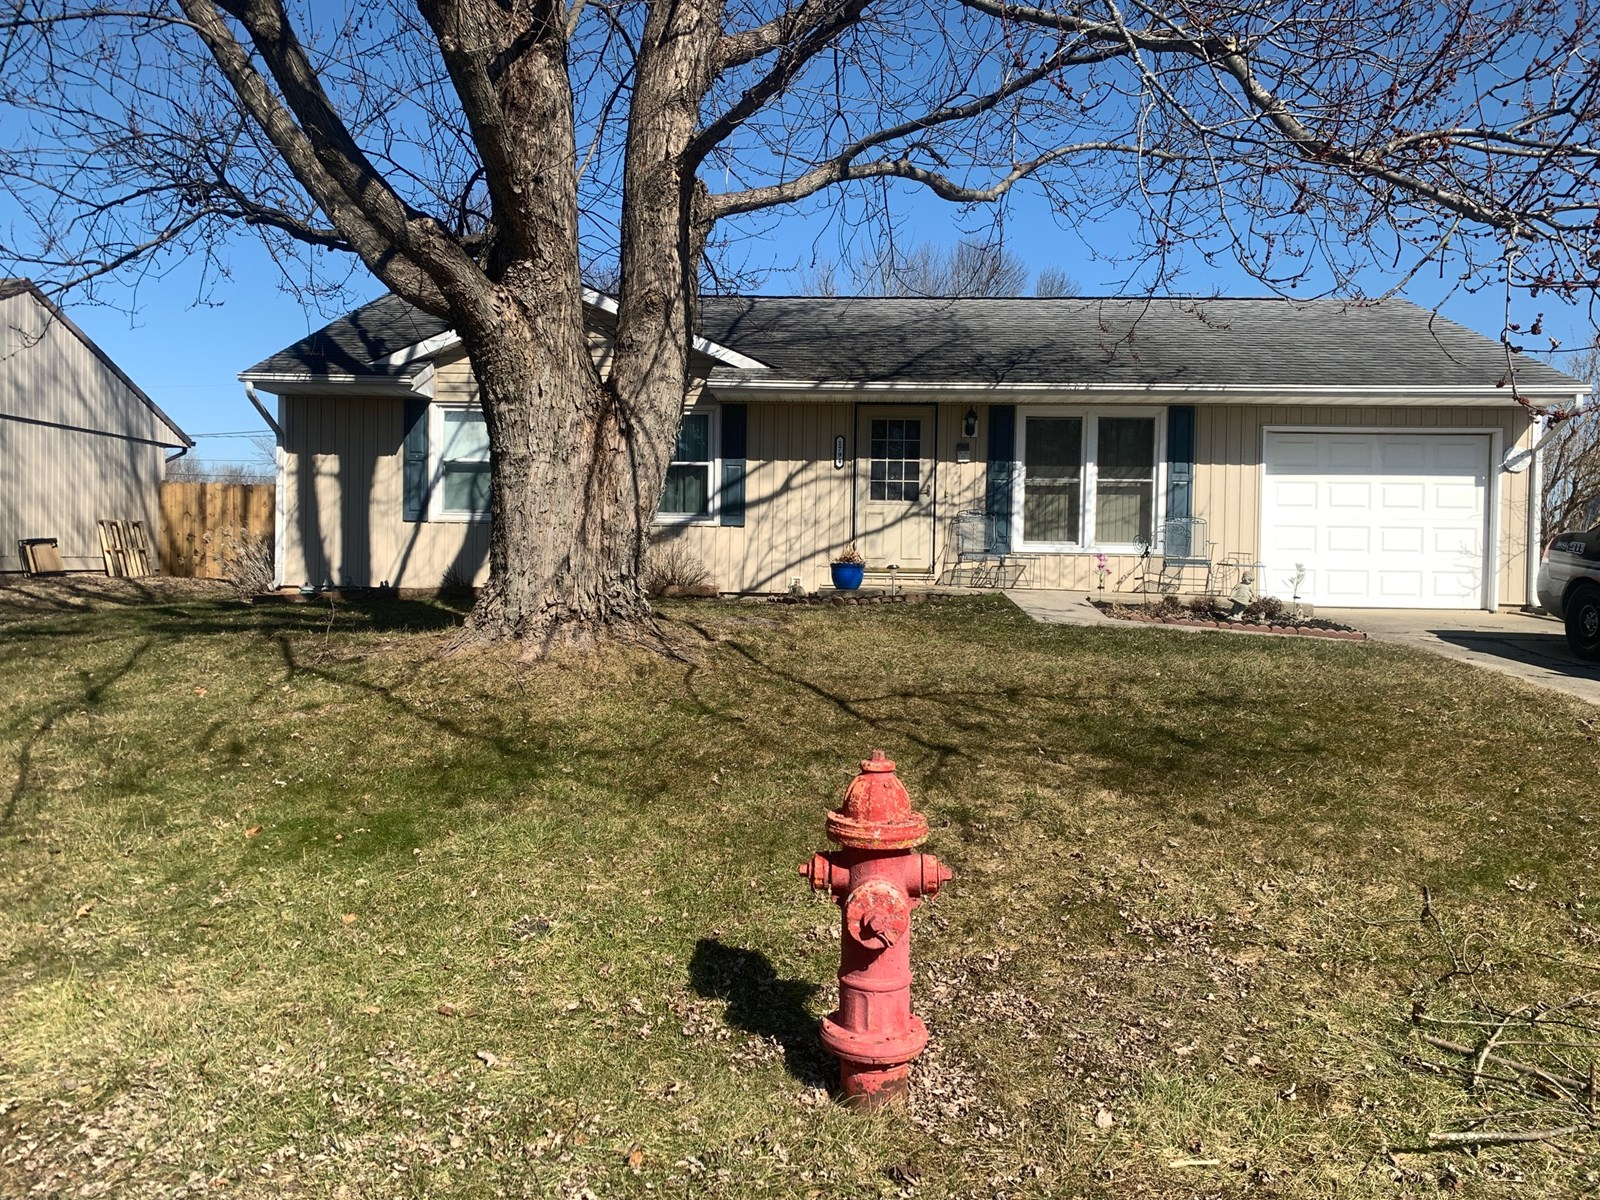 Home for Sale Albany, Indiana